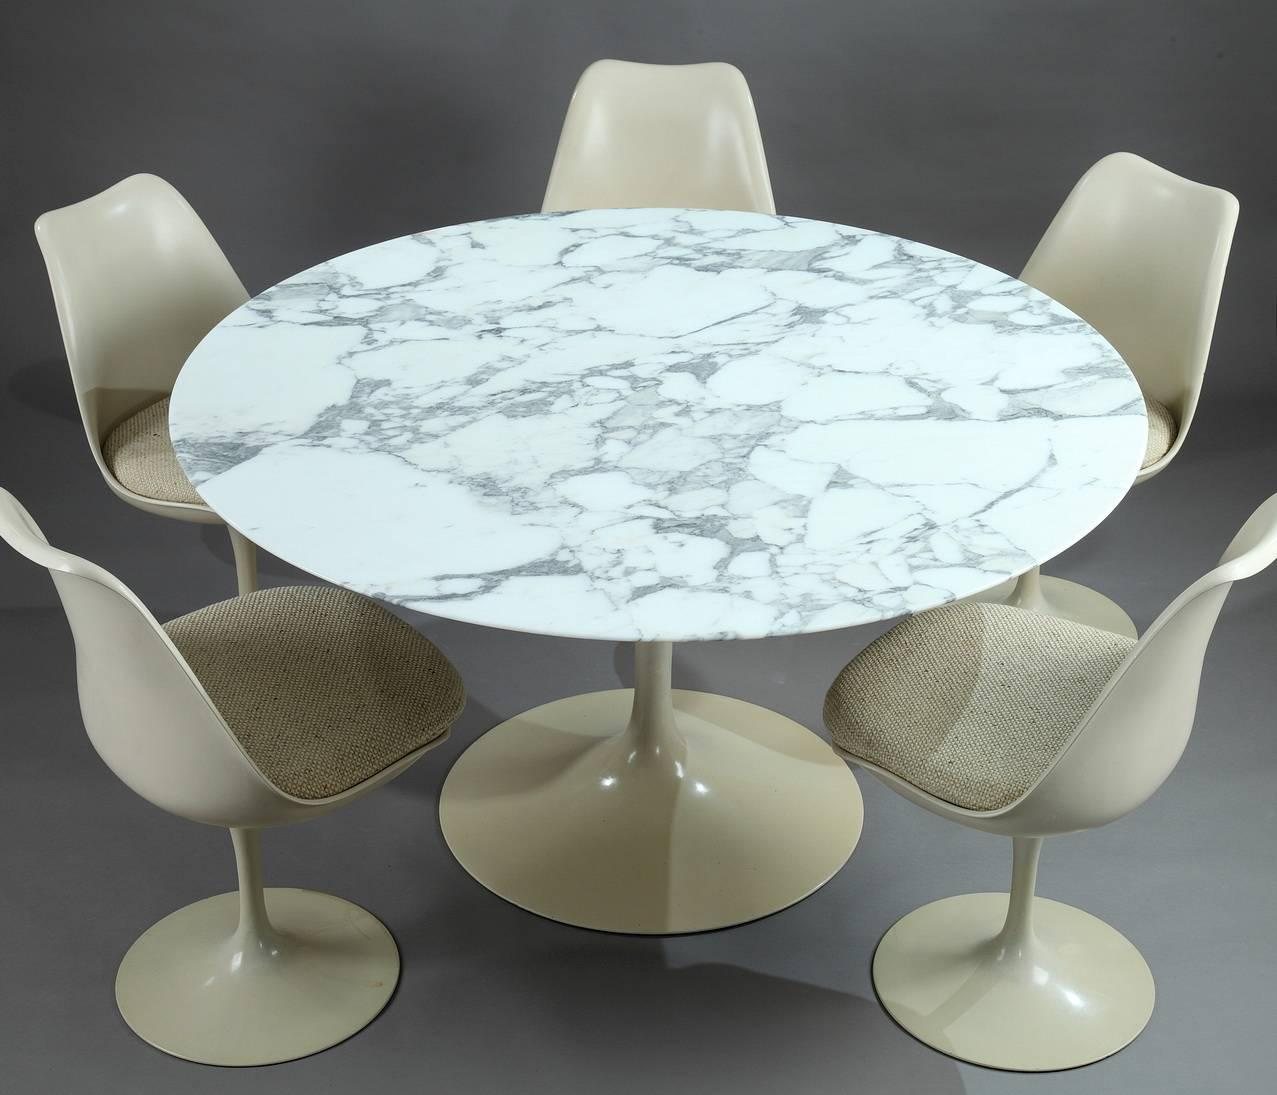 Table Knoll Tulipe Tulip Dining Table And Set Of Five Tulip Seats By Eero Saarinen For Knoll